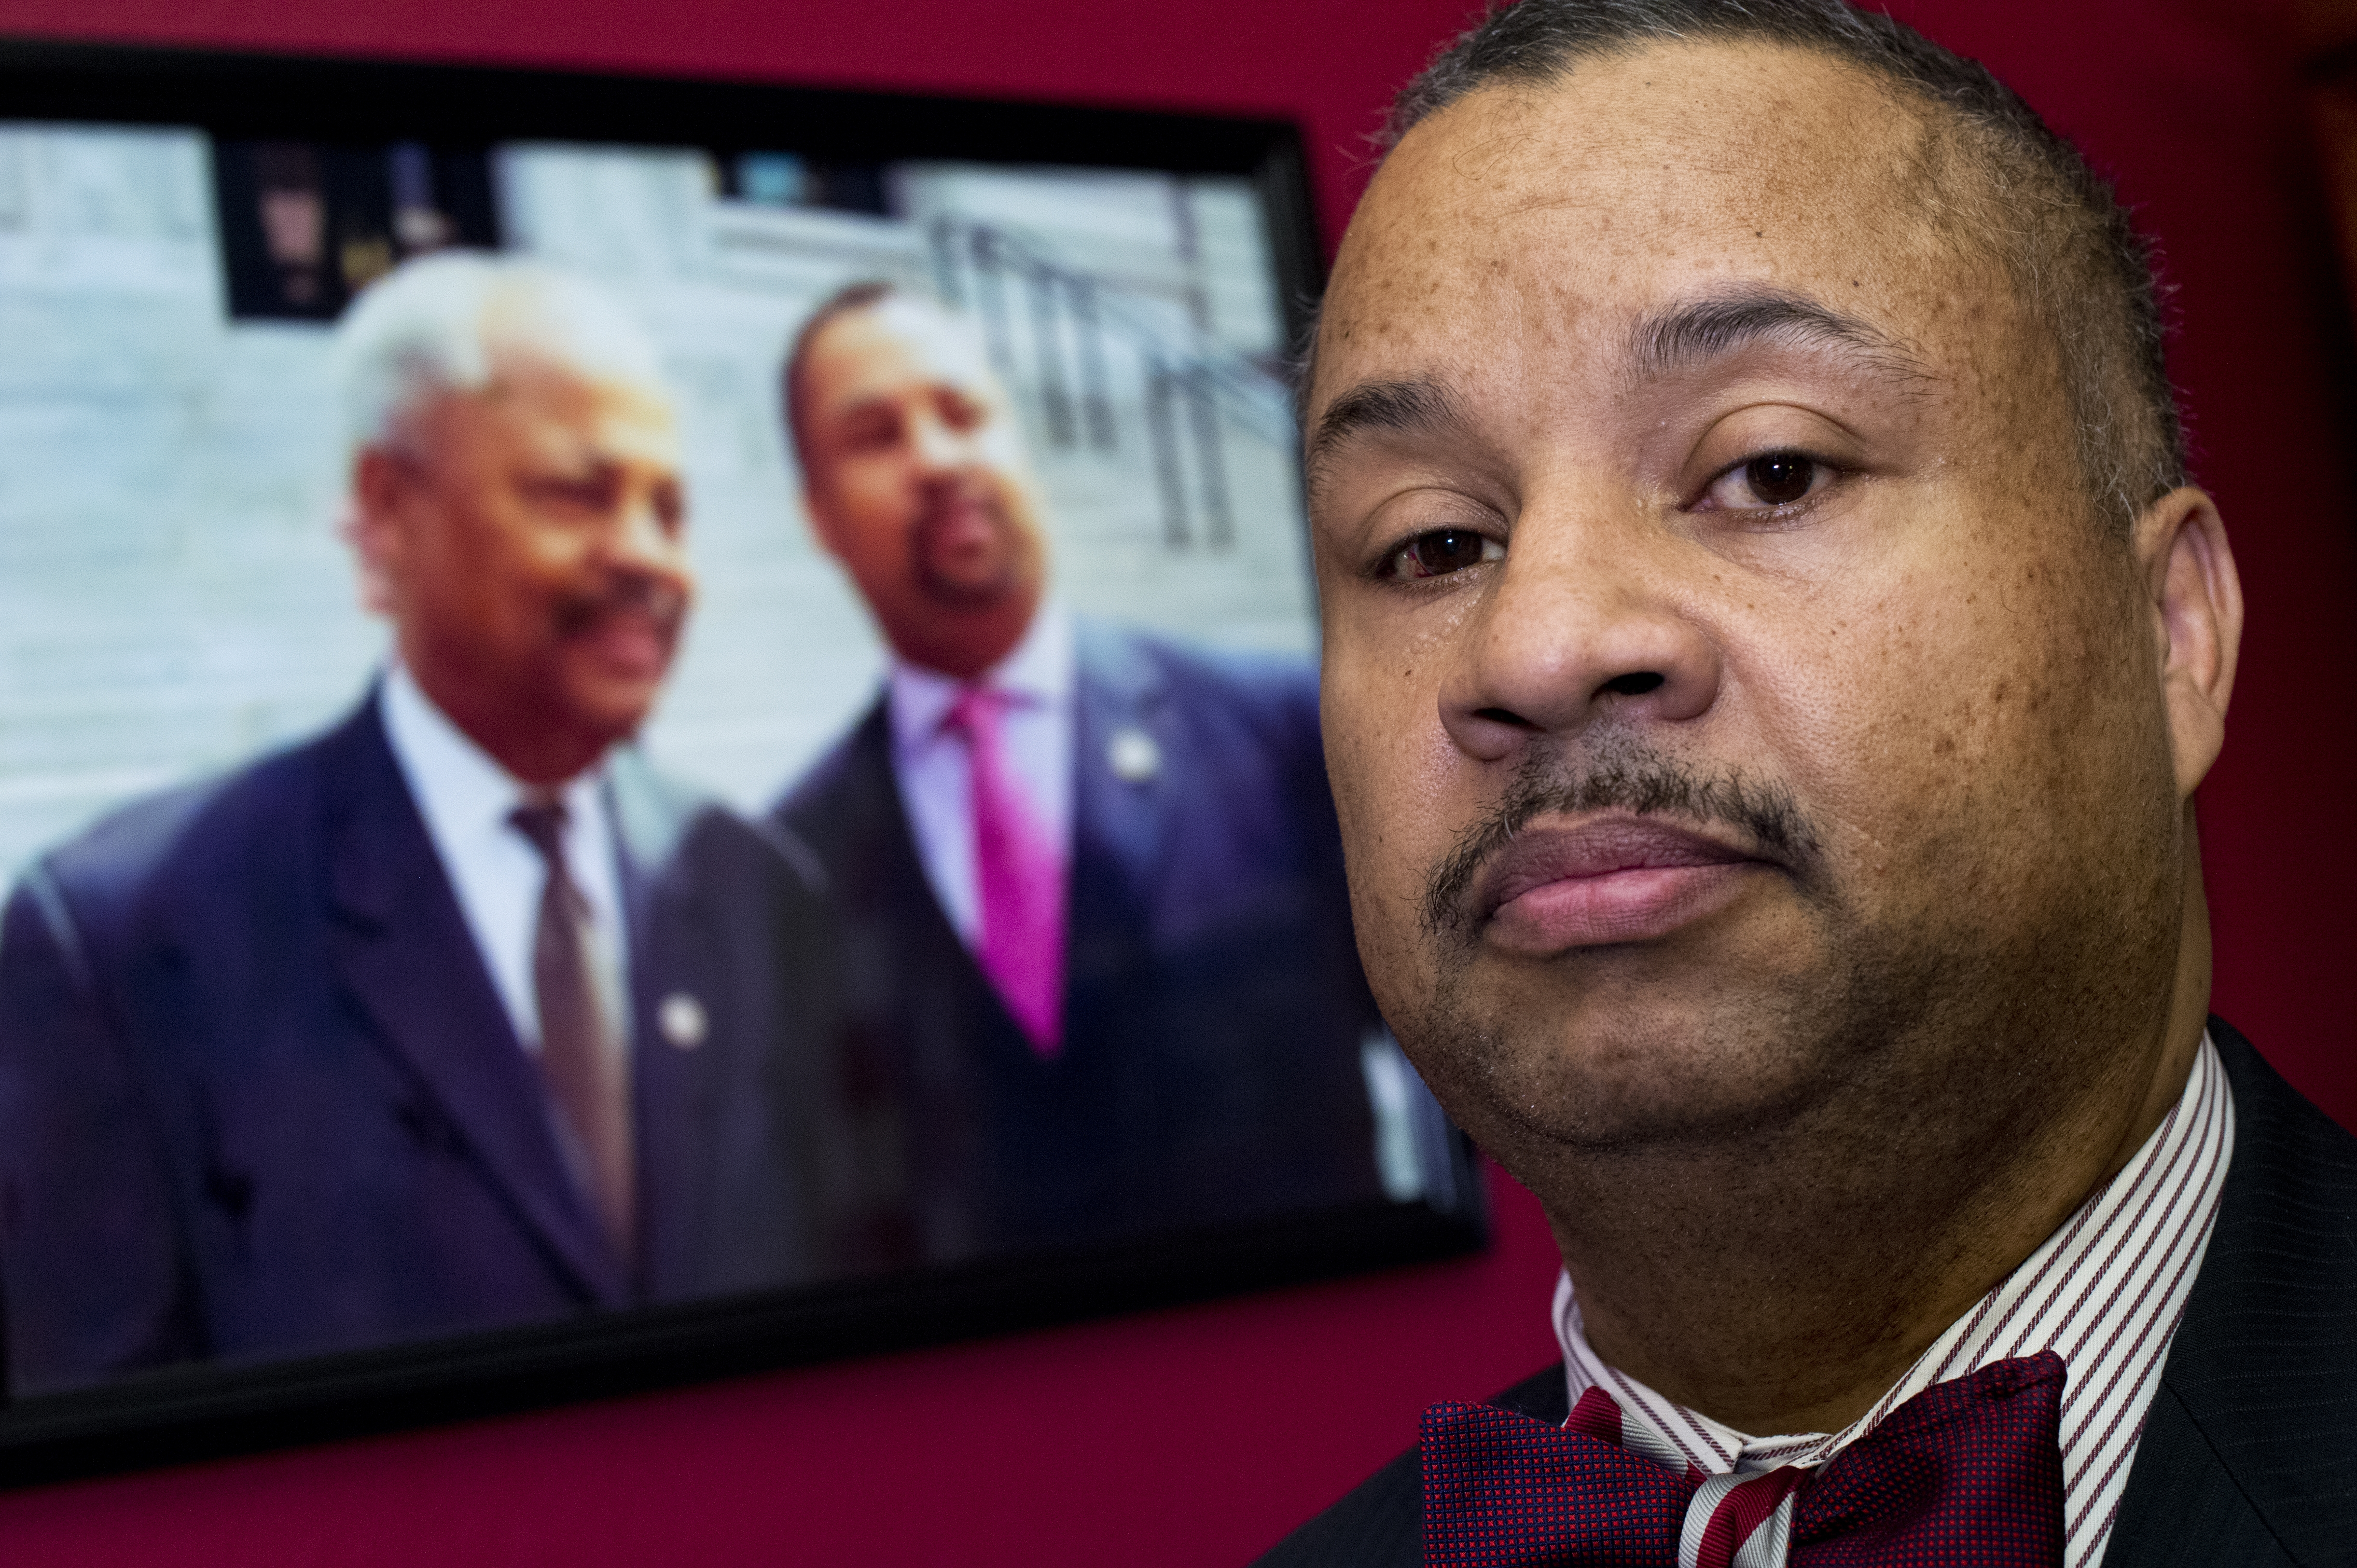 UNITED STATES - FEBRUARY 11: Rep. Donald Payne, Jr., D-N.J., is photographed in his Cannon Building office near a picture of himself and his late father former Rep. Donald Payne, D-N.J., February 11, 2016.(Photo By Tom Williams/CQ Roll Call)